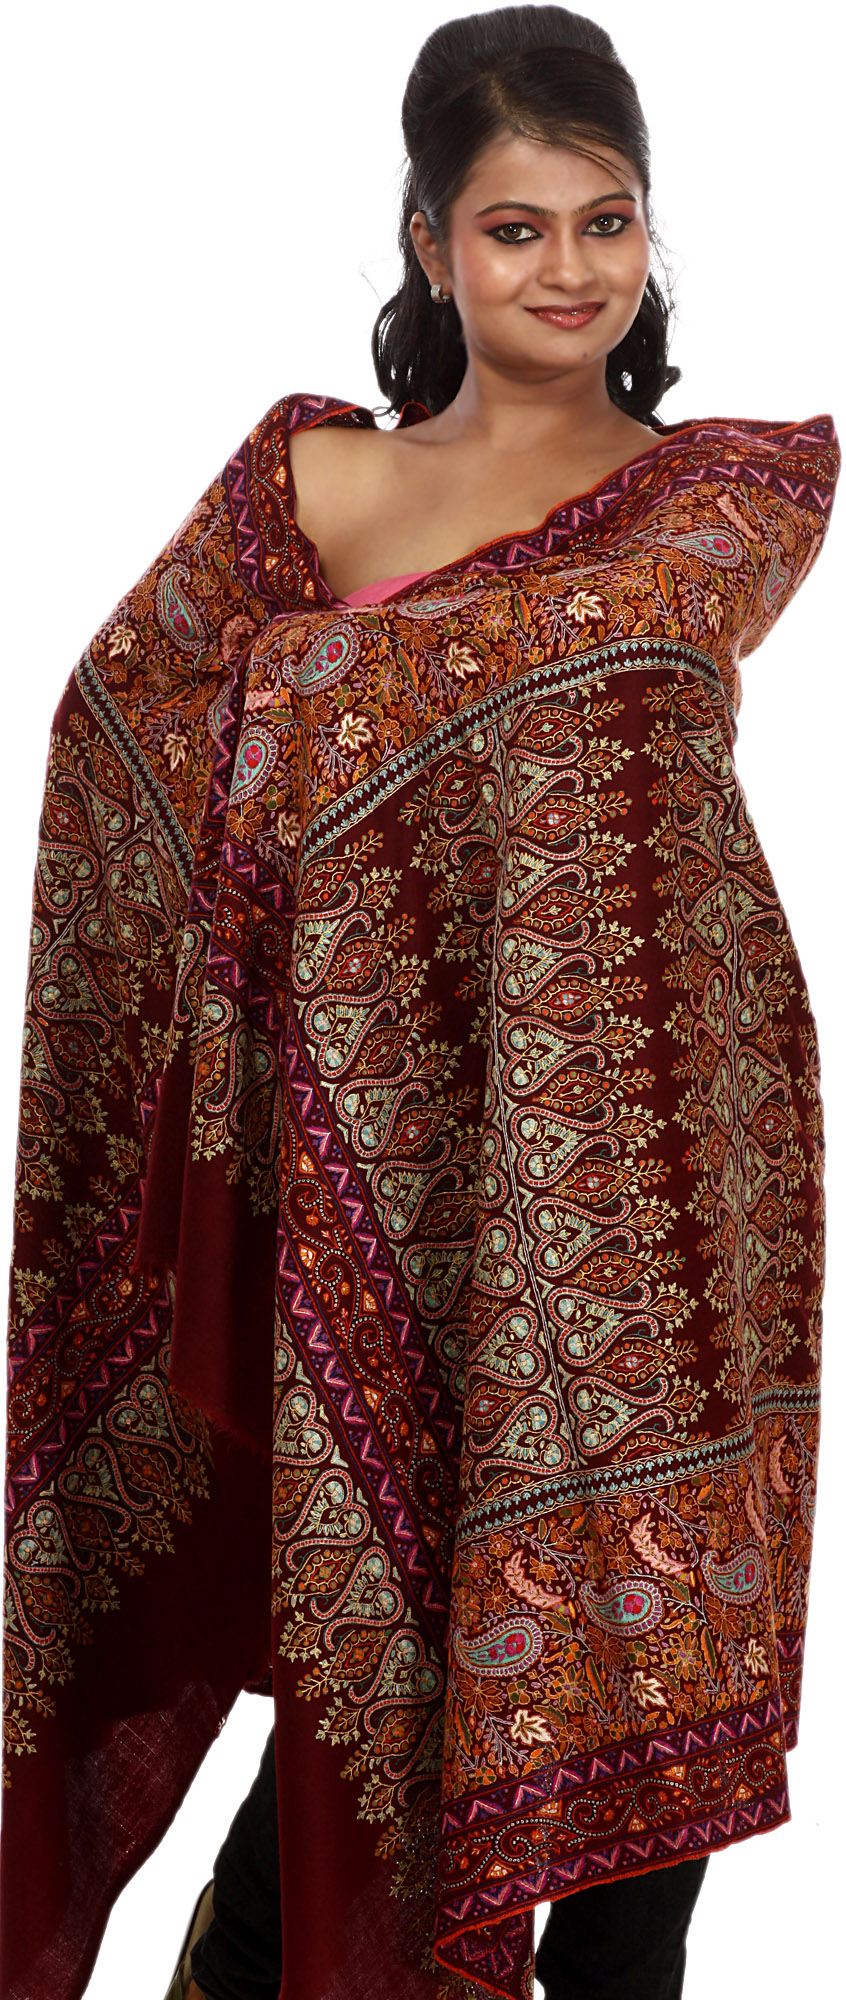 Our Pick of the Top 10 Beautiful Luxury Souvenirs from India Pictures of kashmiri shawls